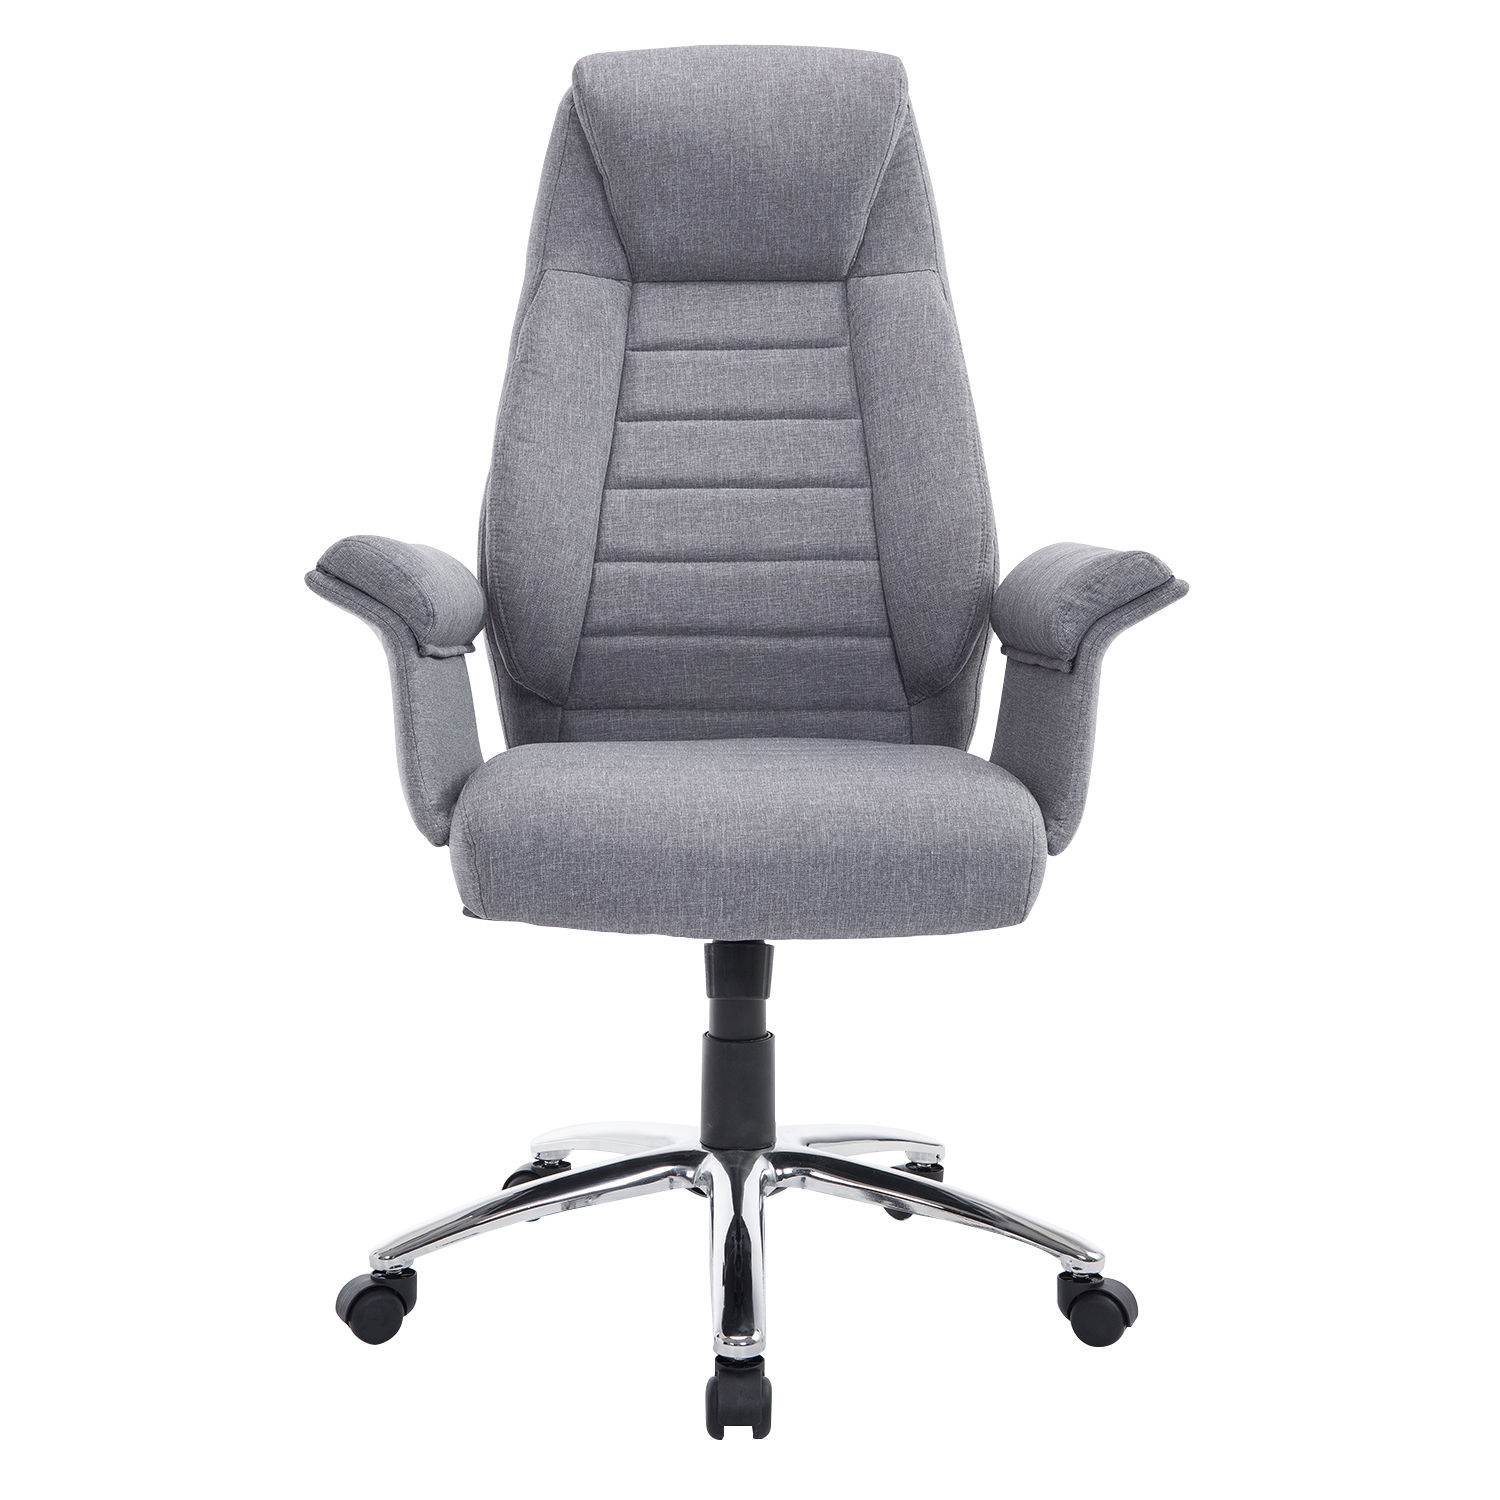 padded office chair bedroom malaysia rolling executive high back swivel